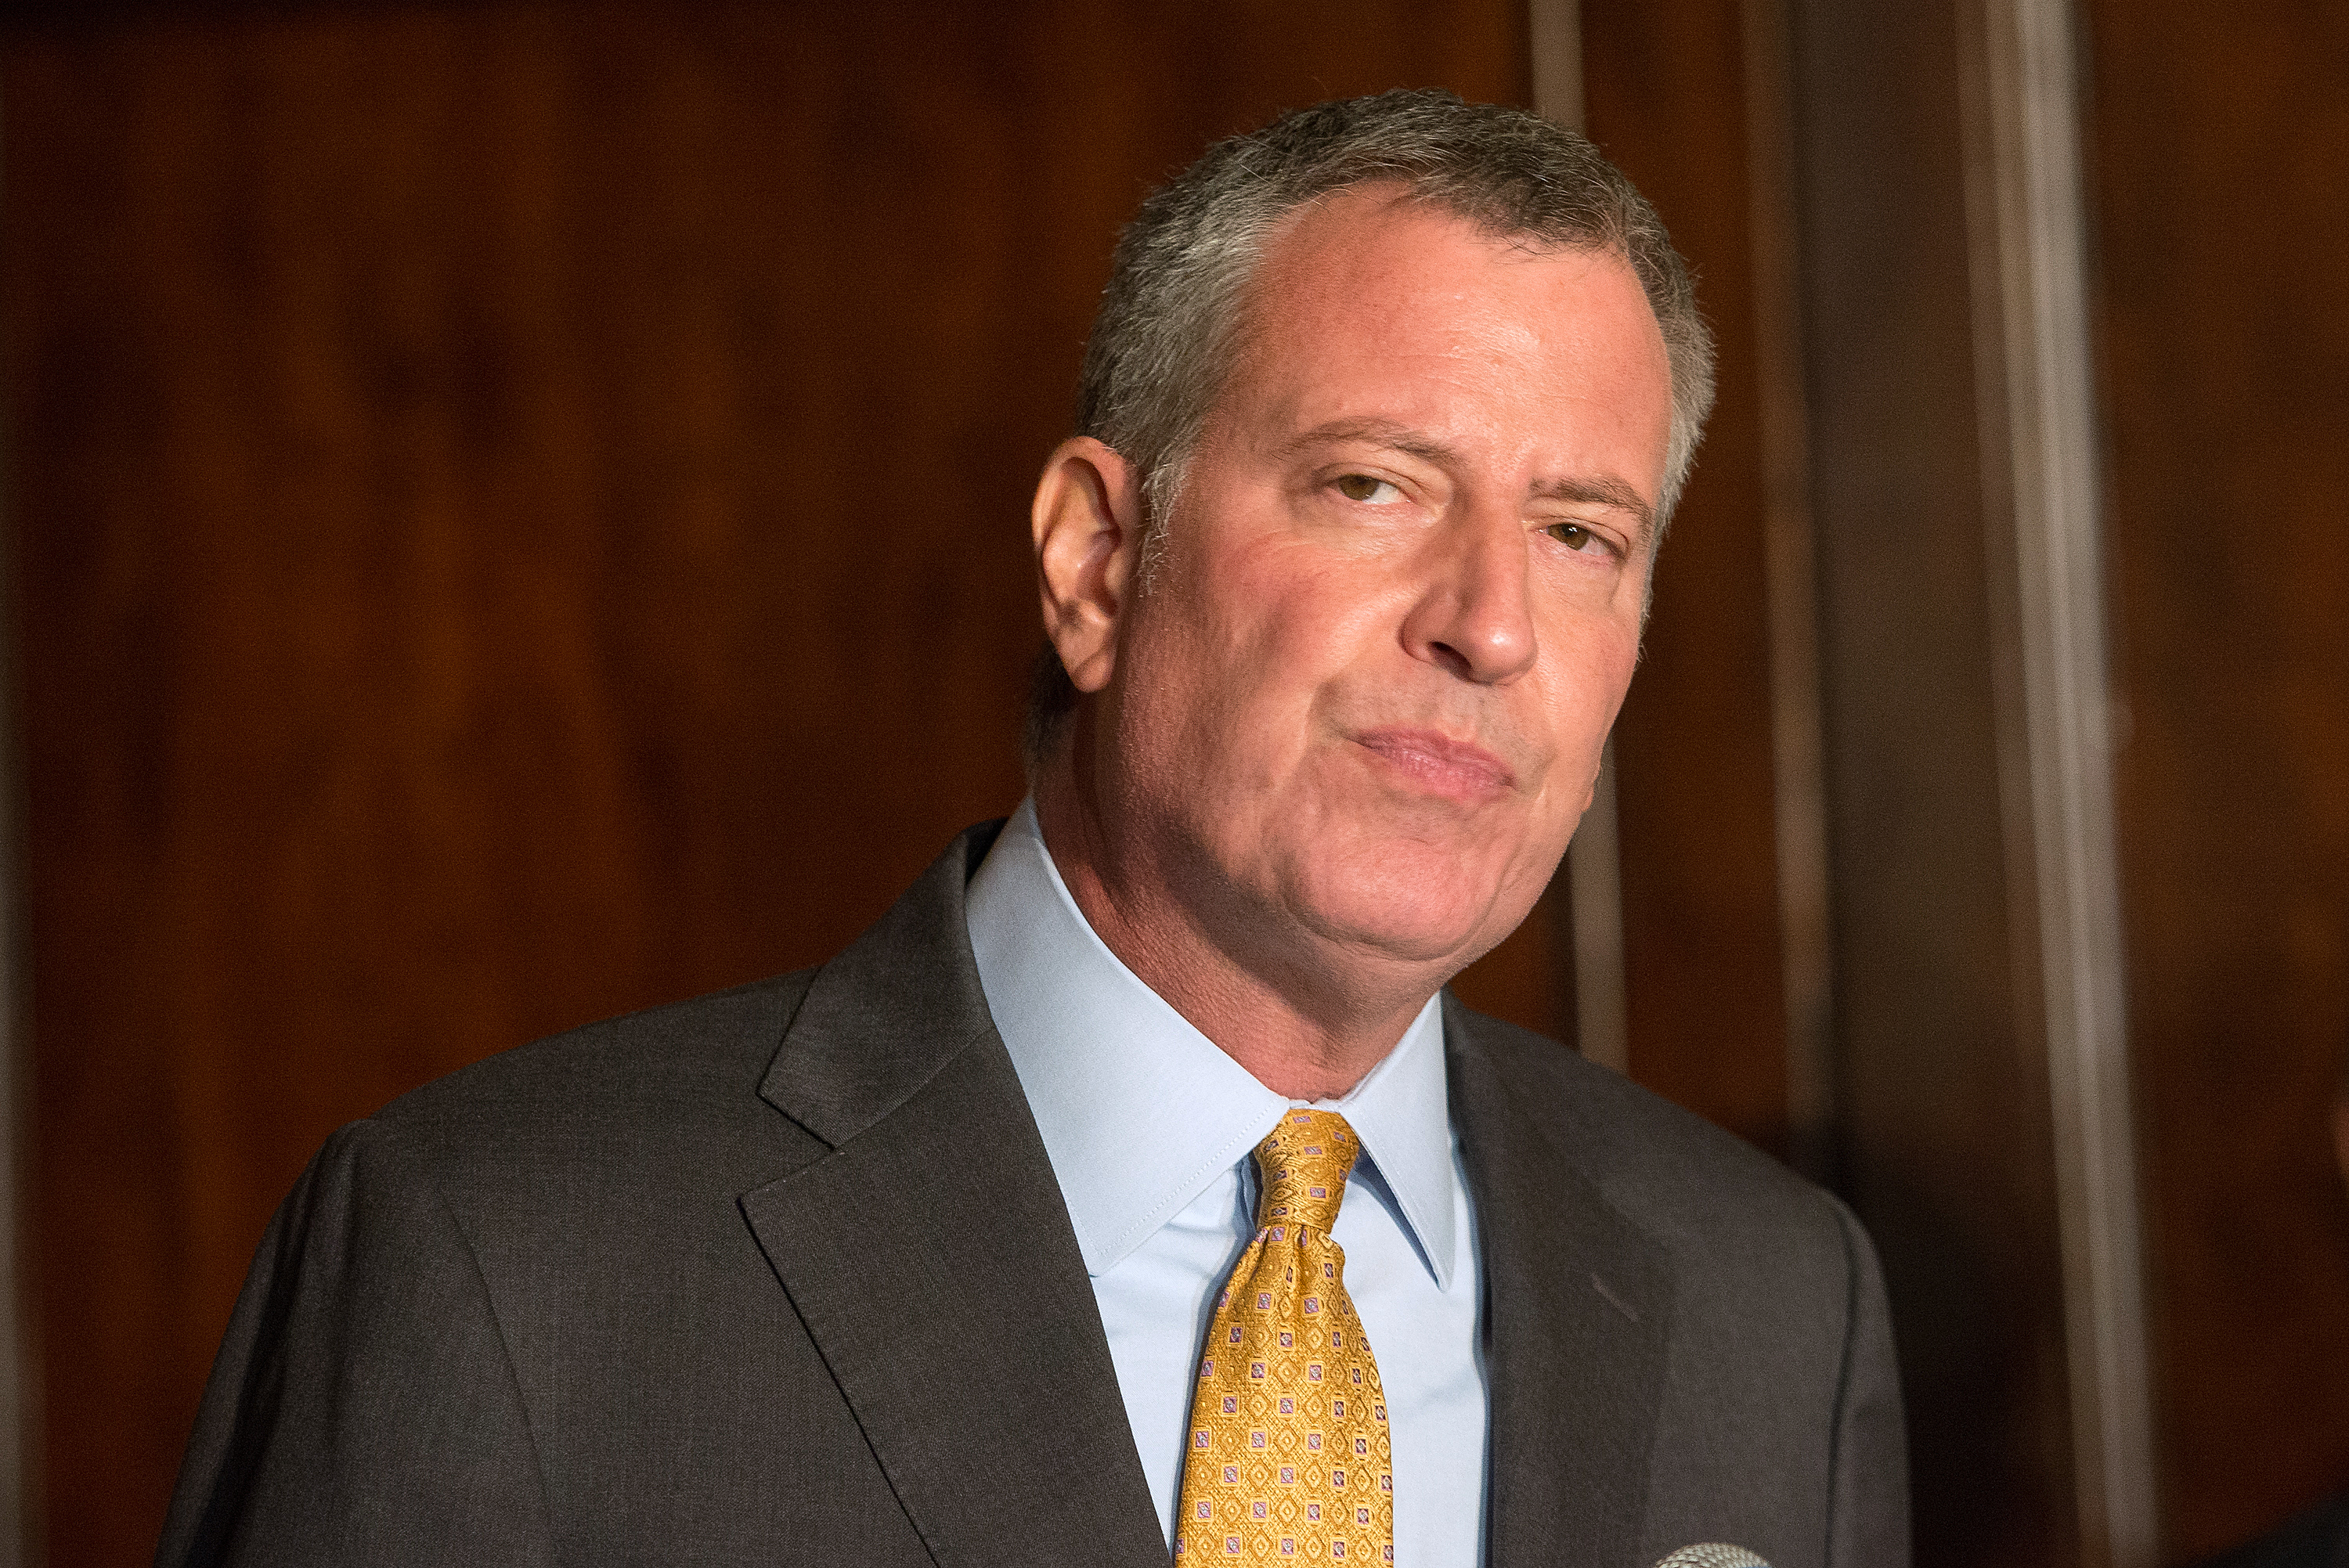 New York City Mayor Bill de Blasio attends the Answer the Call 30th Anniversary Gala at The Waldorf Astoria on October 22, 2015 in New York City.